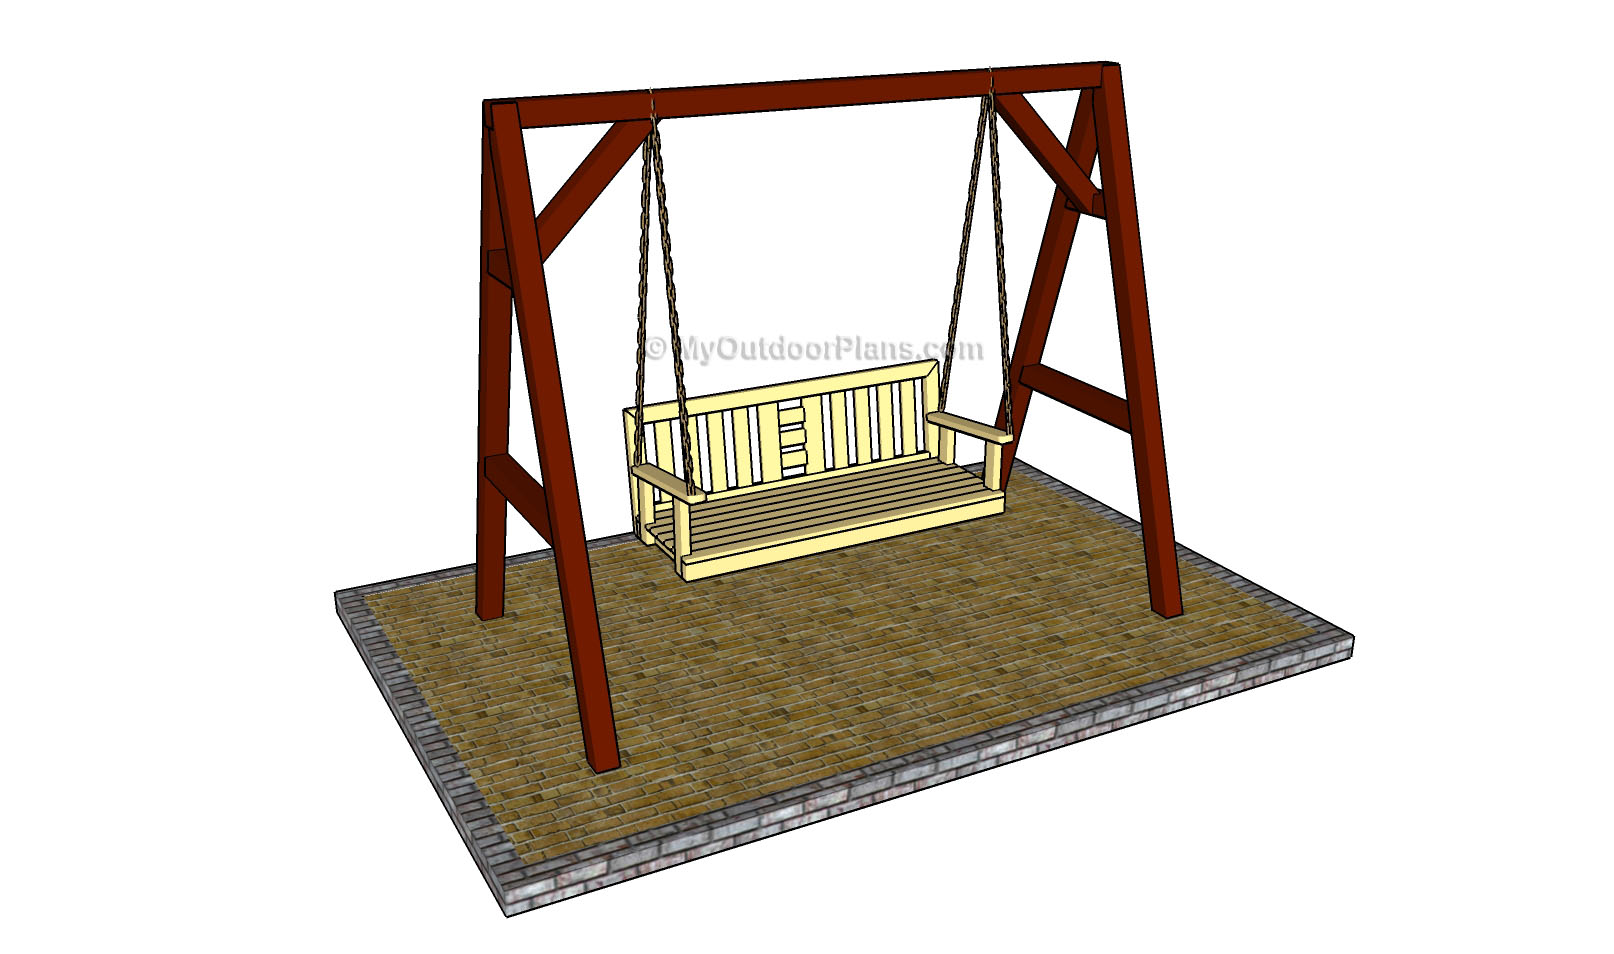 Free Porch Swing Plans | Free Outdoor Plans - DIY Shed, Wooden ...